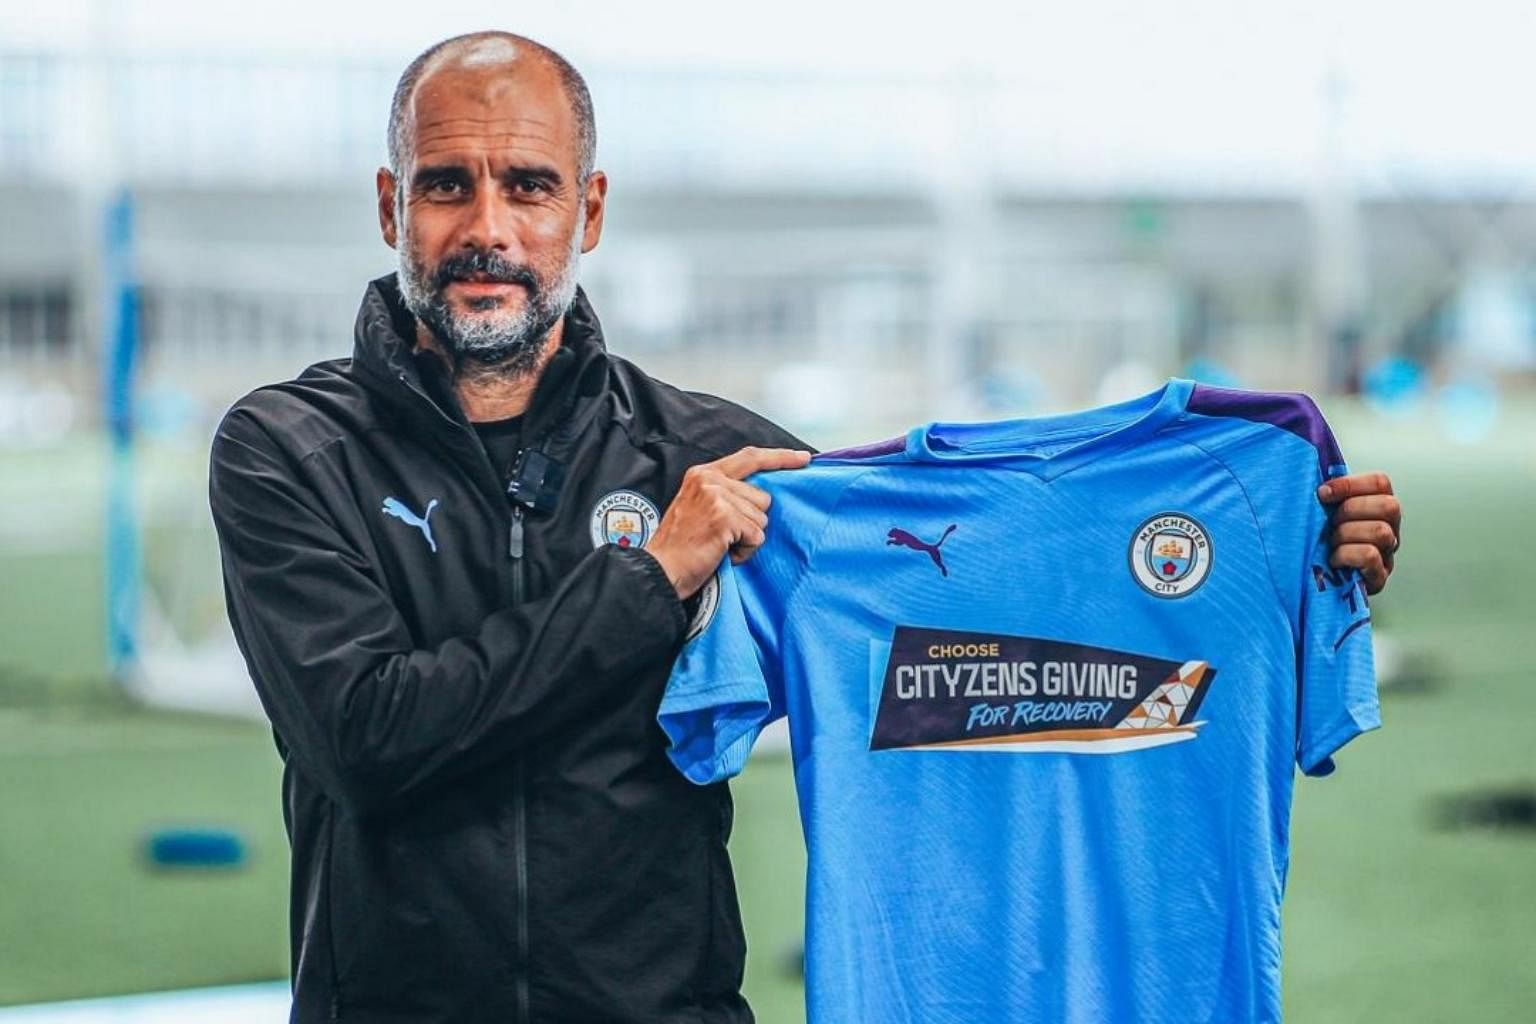 Football Manchester City To Wear New Jersey For Arsenal Game To Promote Covid 19 Relief Fund Football News Top Stories The Straits Times